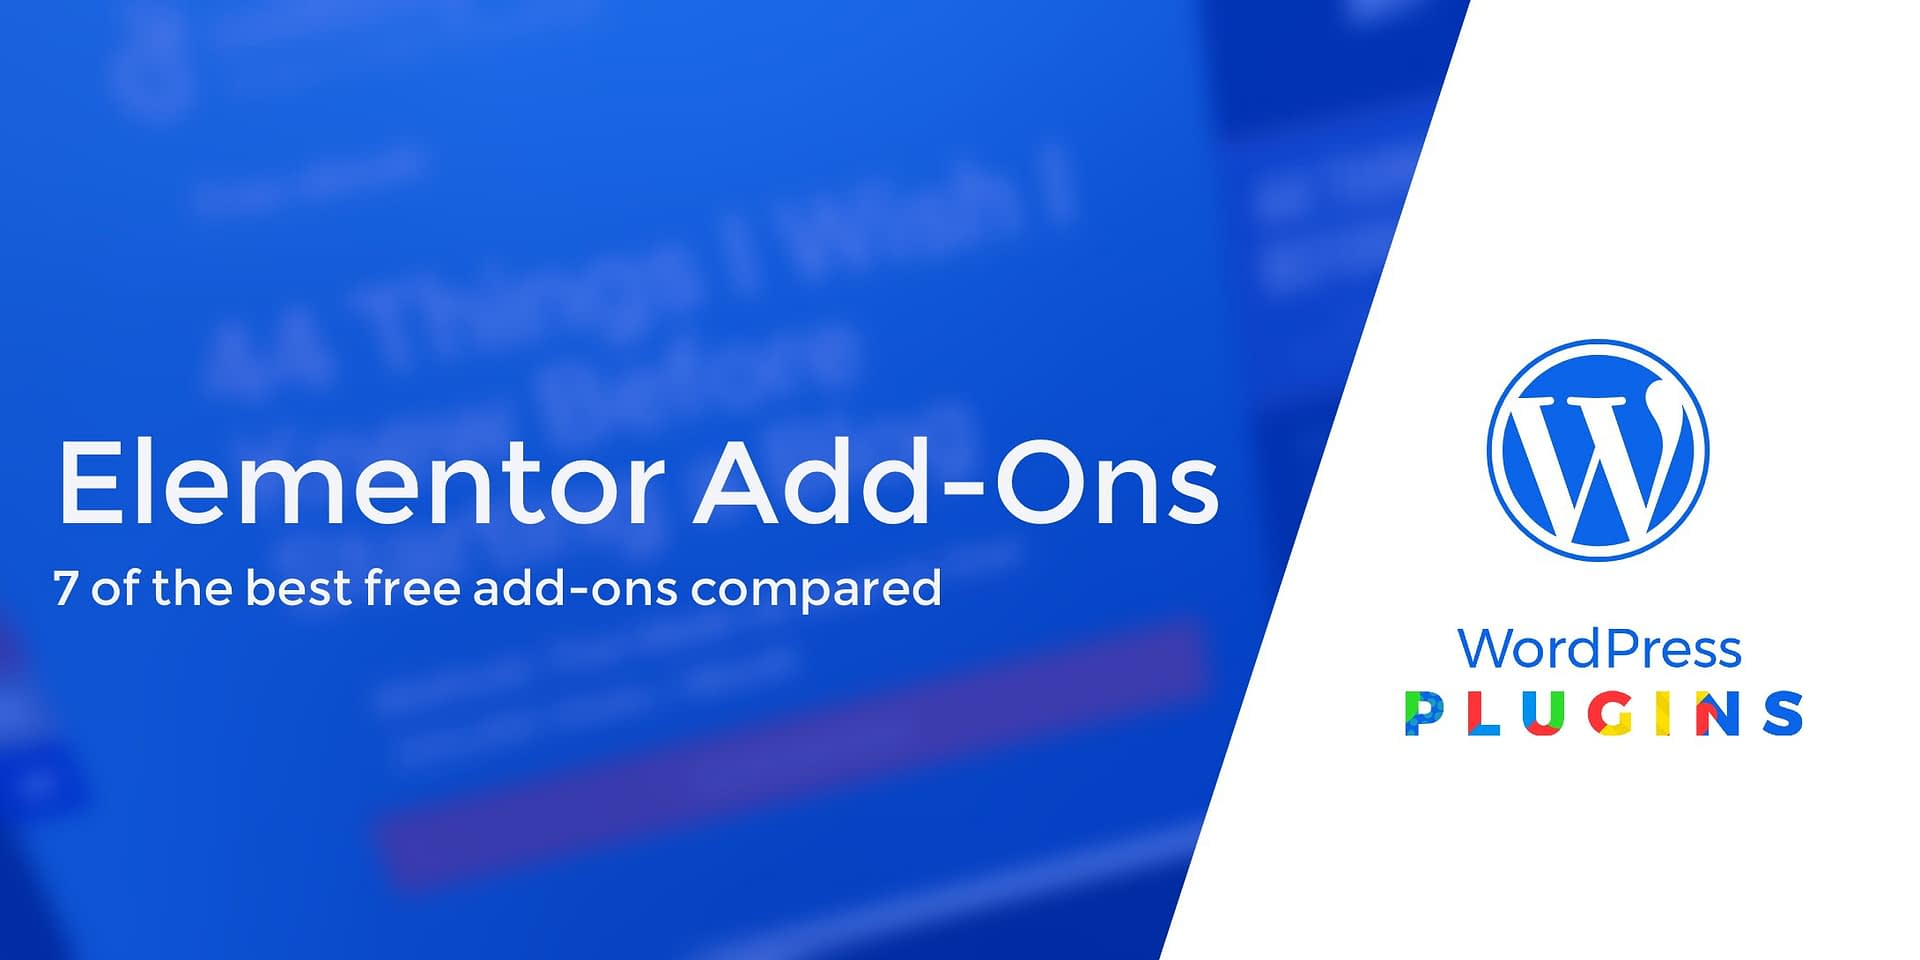 8 Best Free Elementor Add-Ons for WordPress Compared